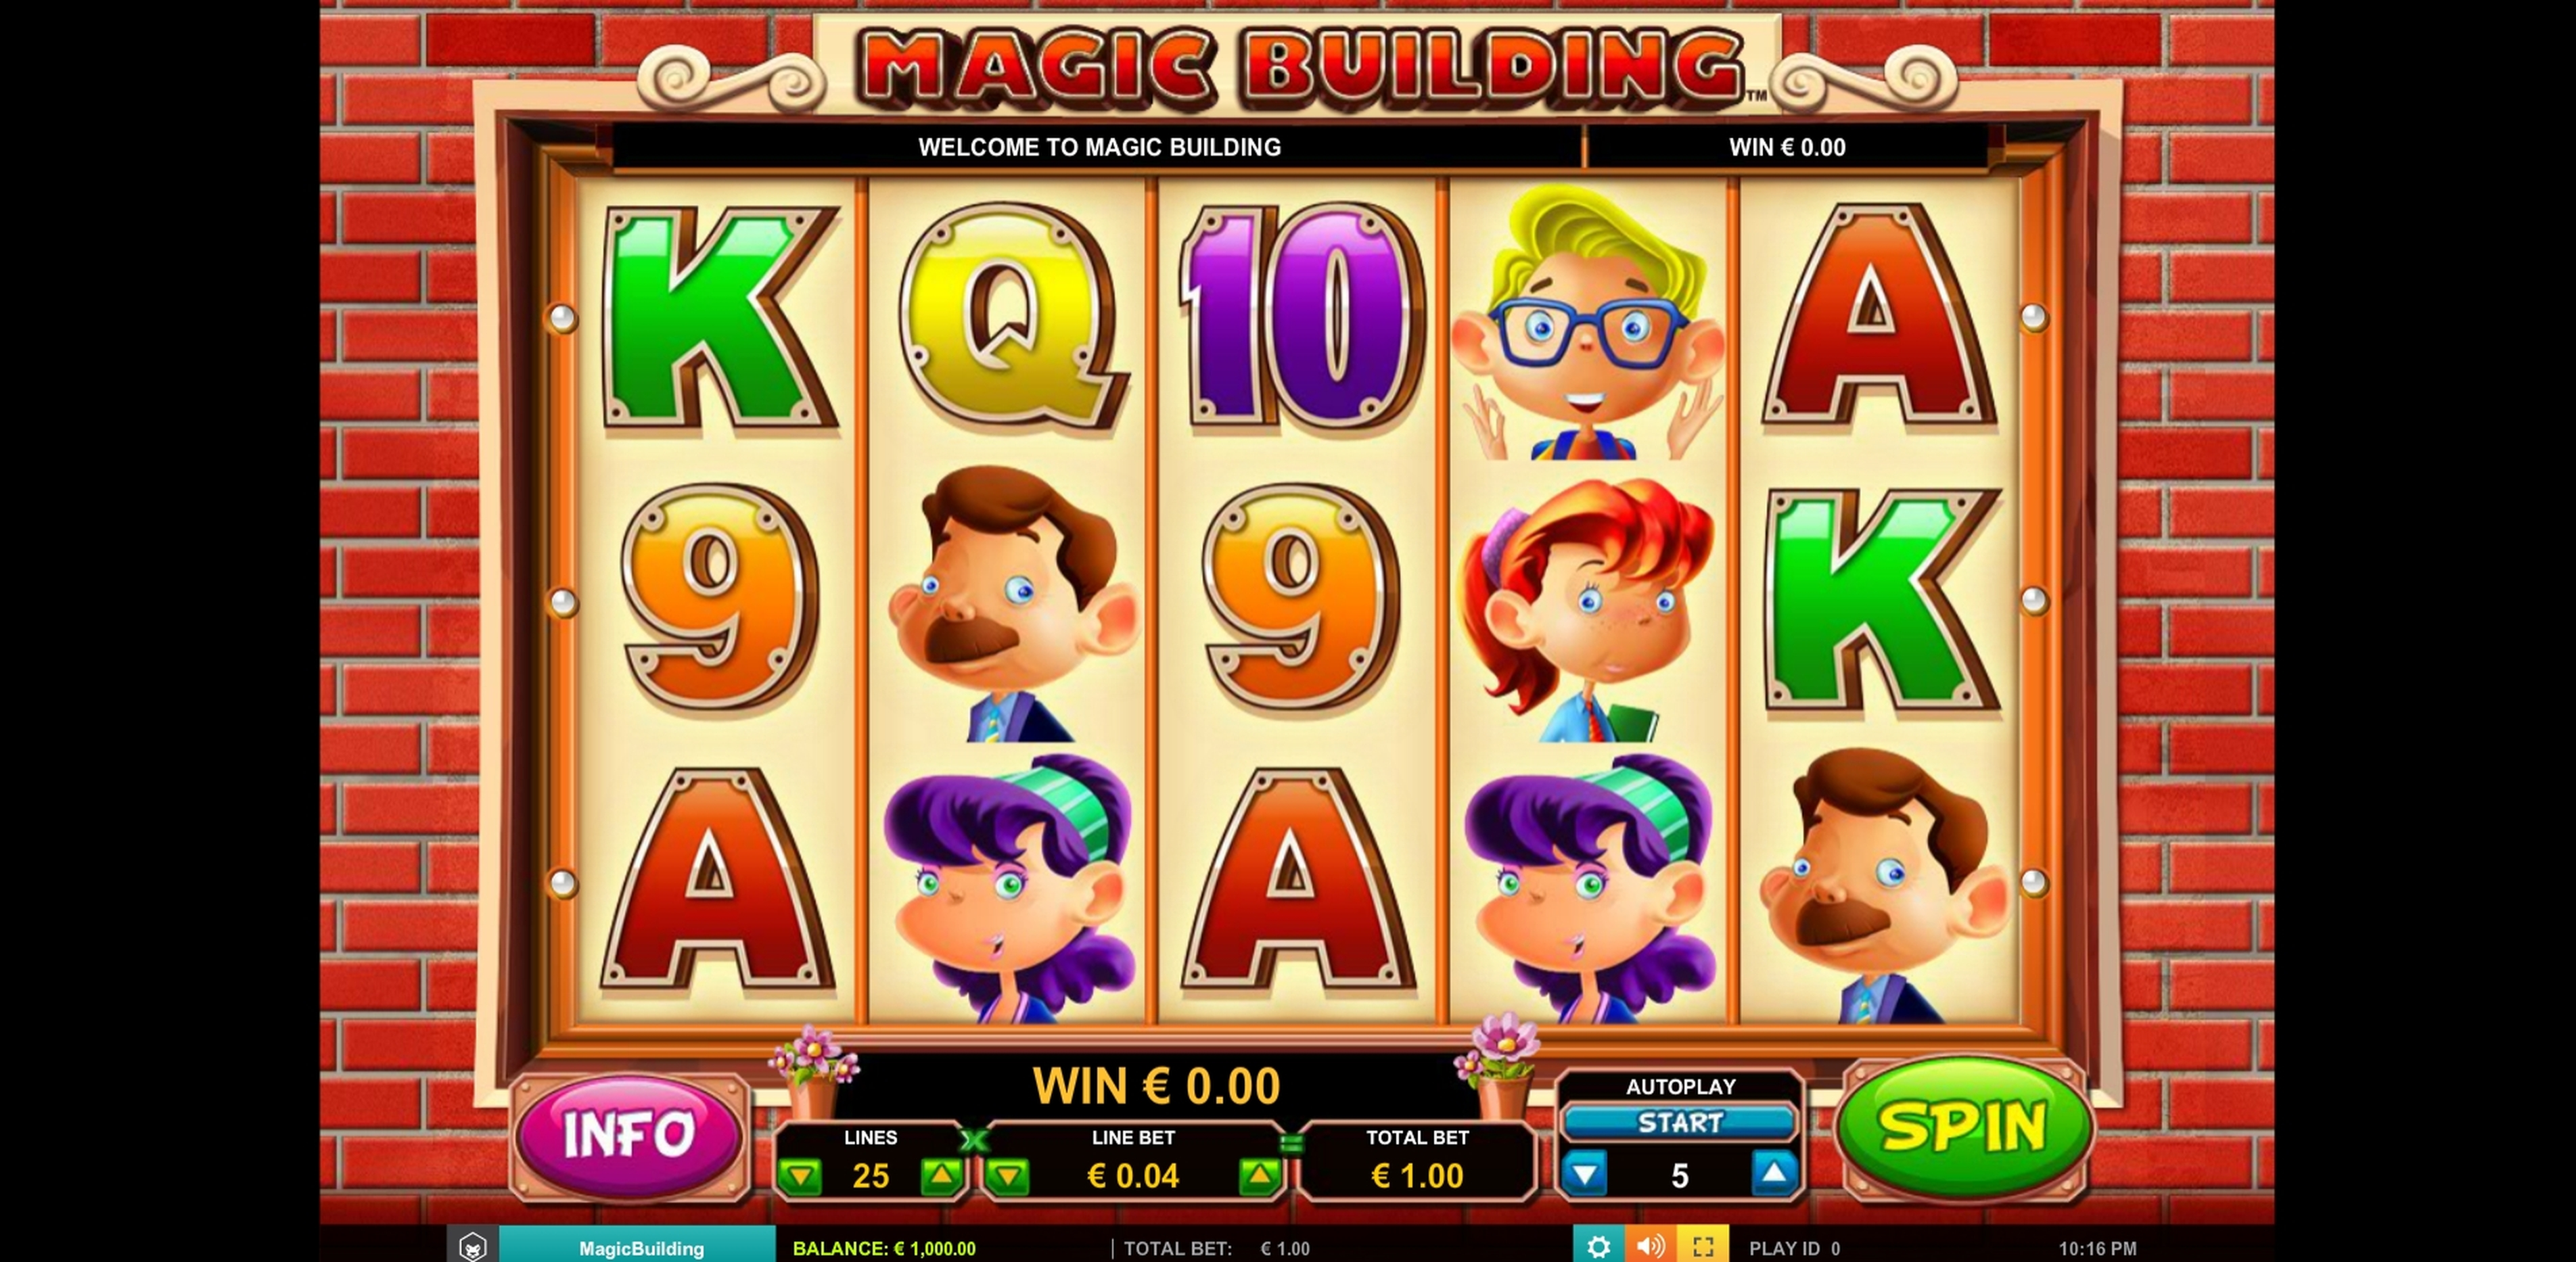 Reels in Magic Building Slot Game by Leander Games